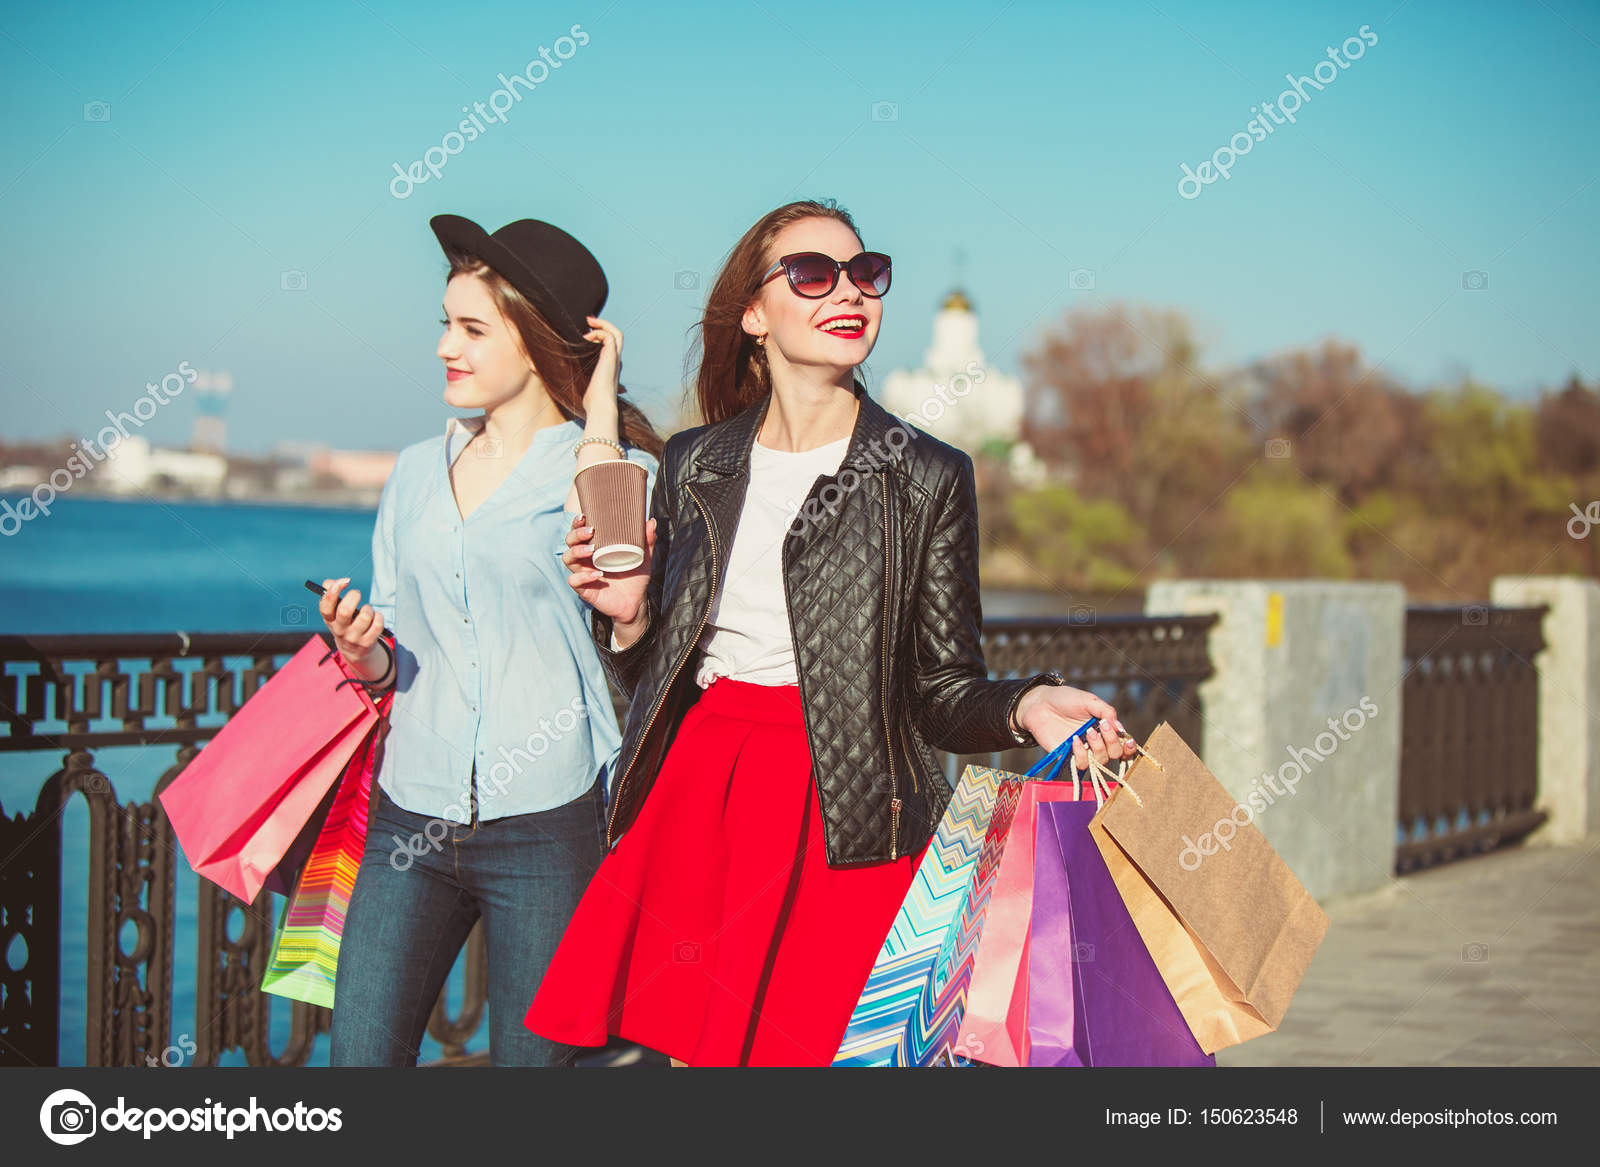 Two Girls Walking With Shopping On City Streets Stock Photo